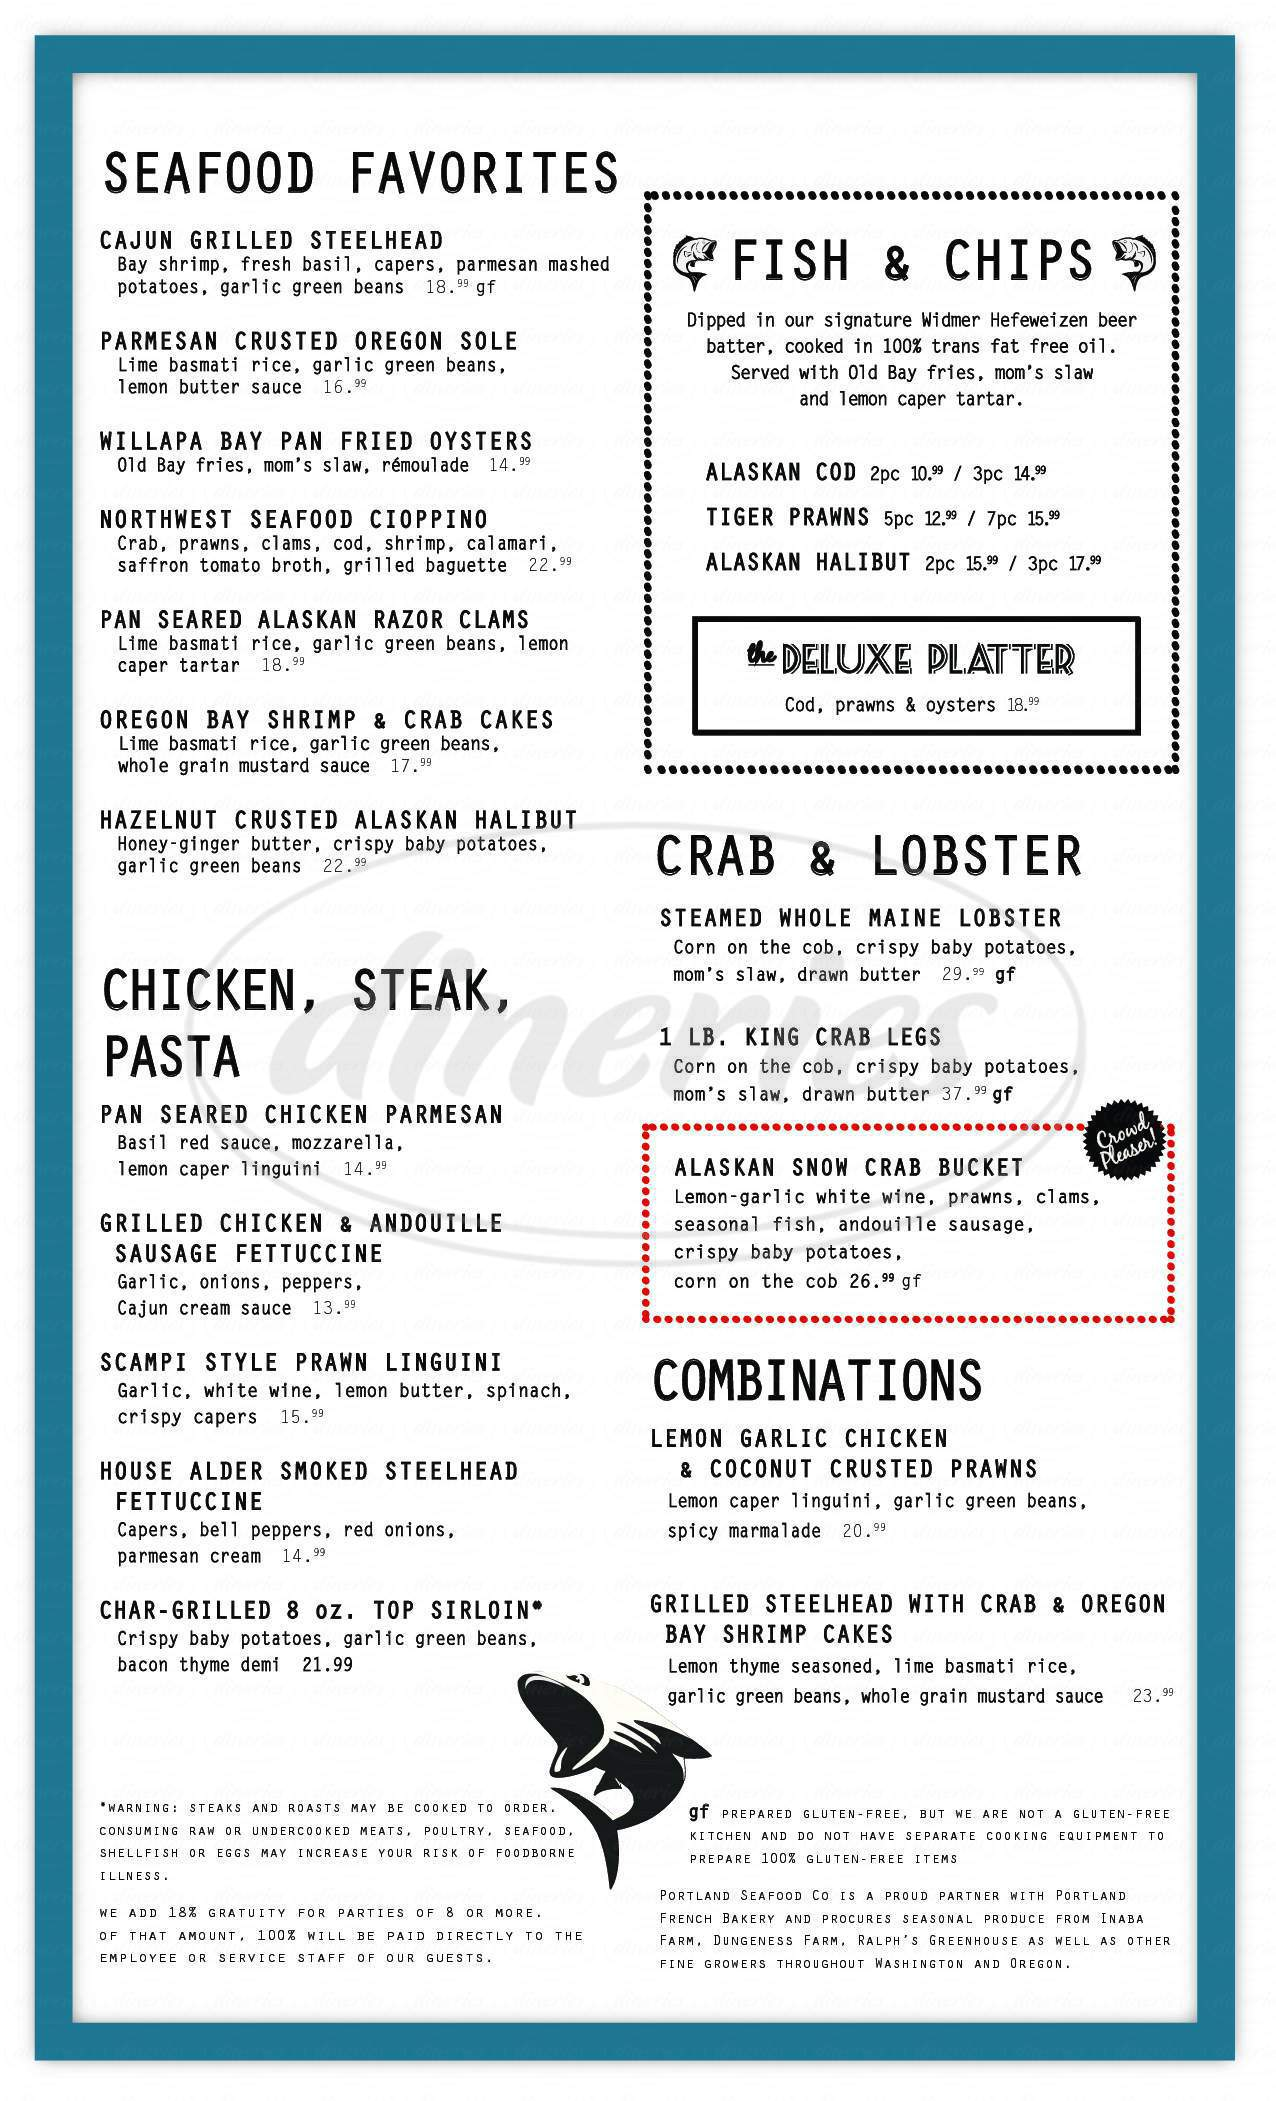 menu for Portland Seafood Company